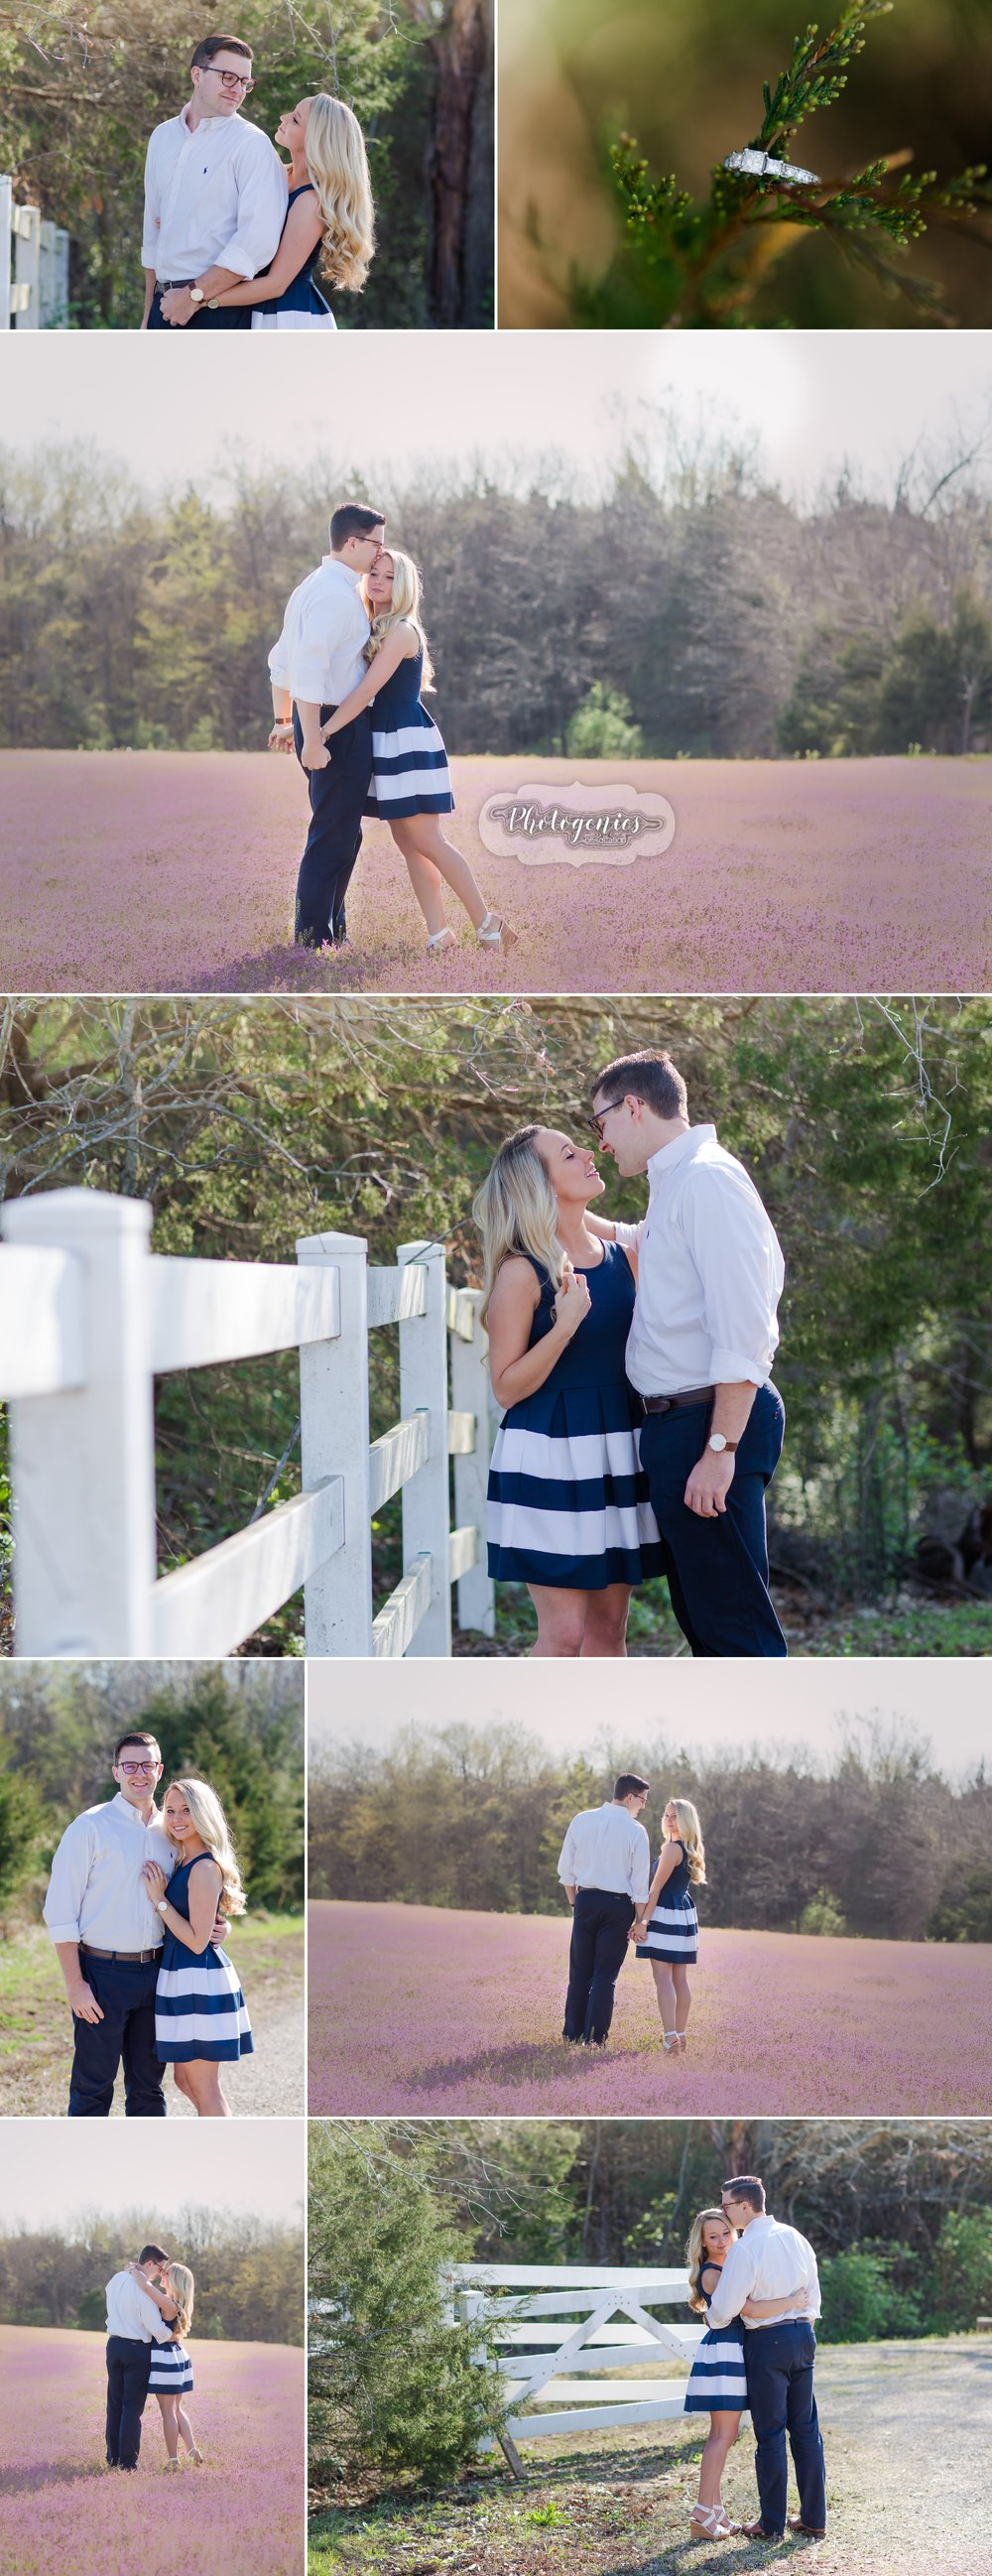 engagement_morning_pictures_field_flowers_poses_wedding_ideas_greenery_spring_lake_pond 2